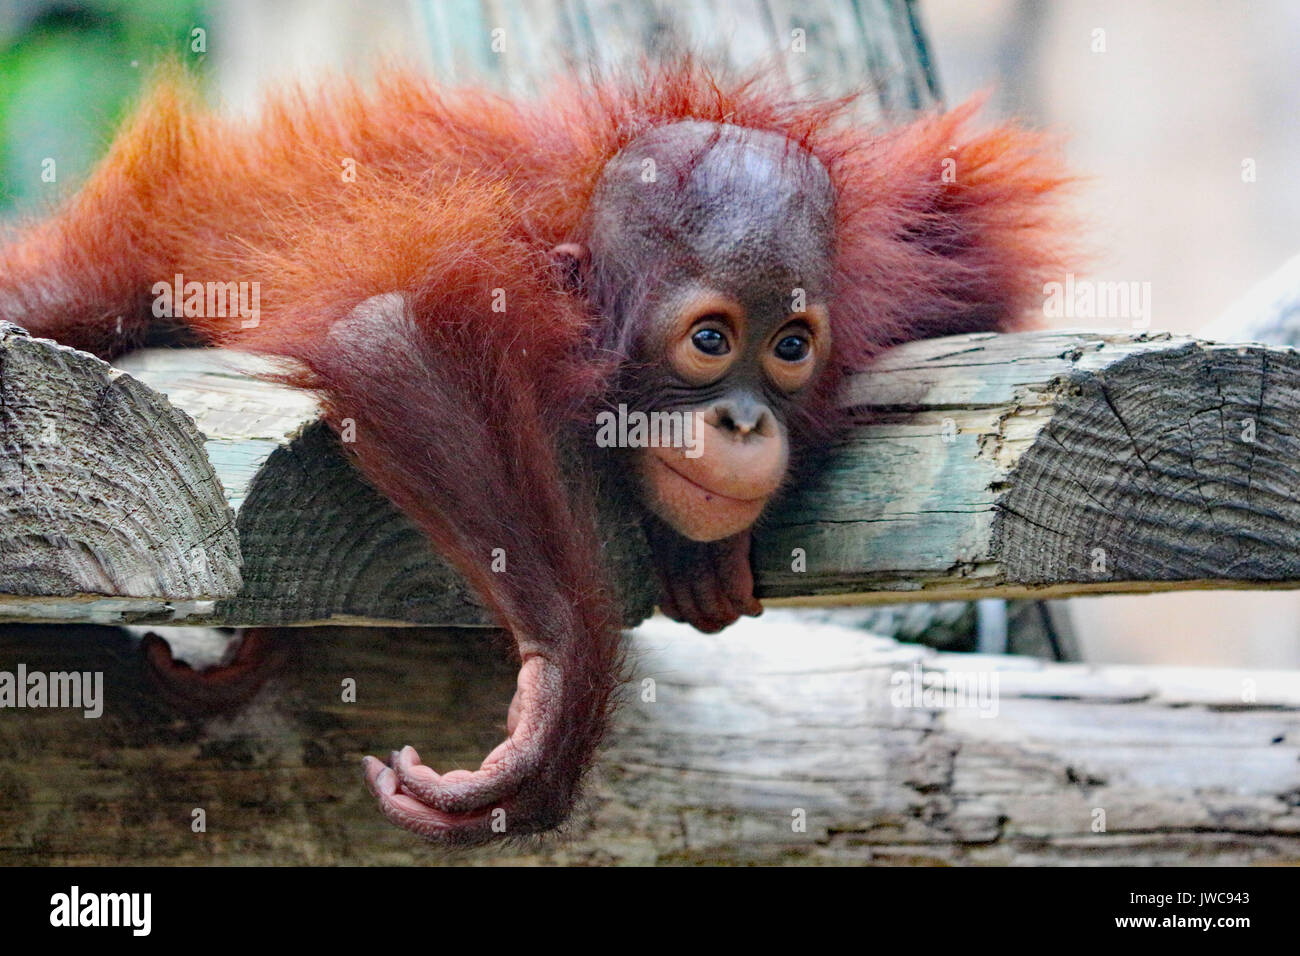 A baby Orangutan playing around on a primate platform. - Stock Image